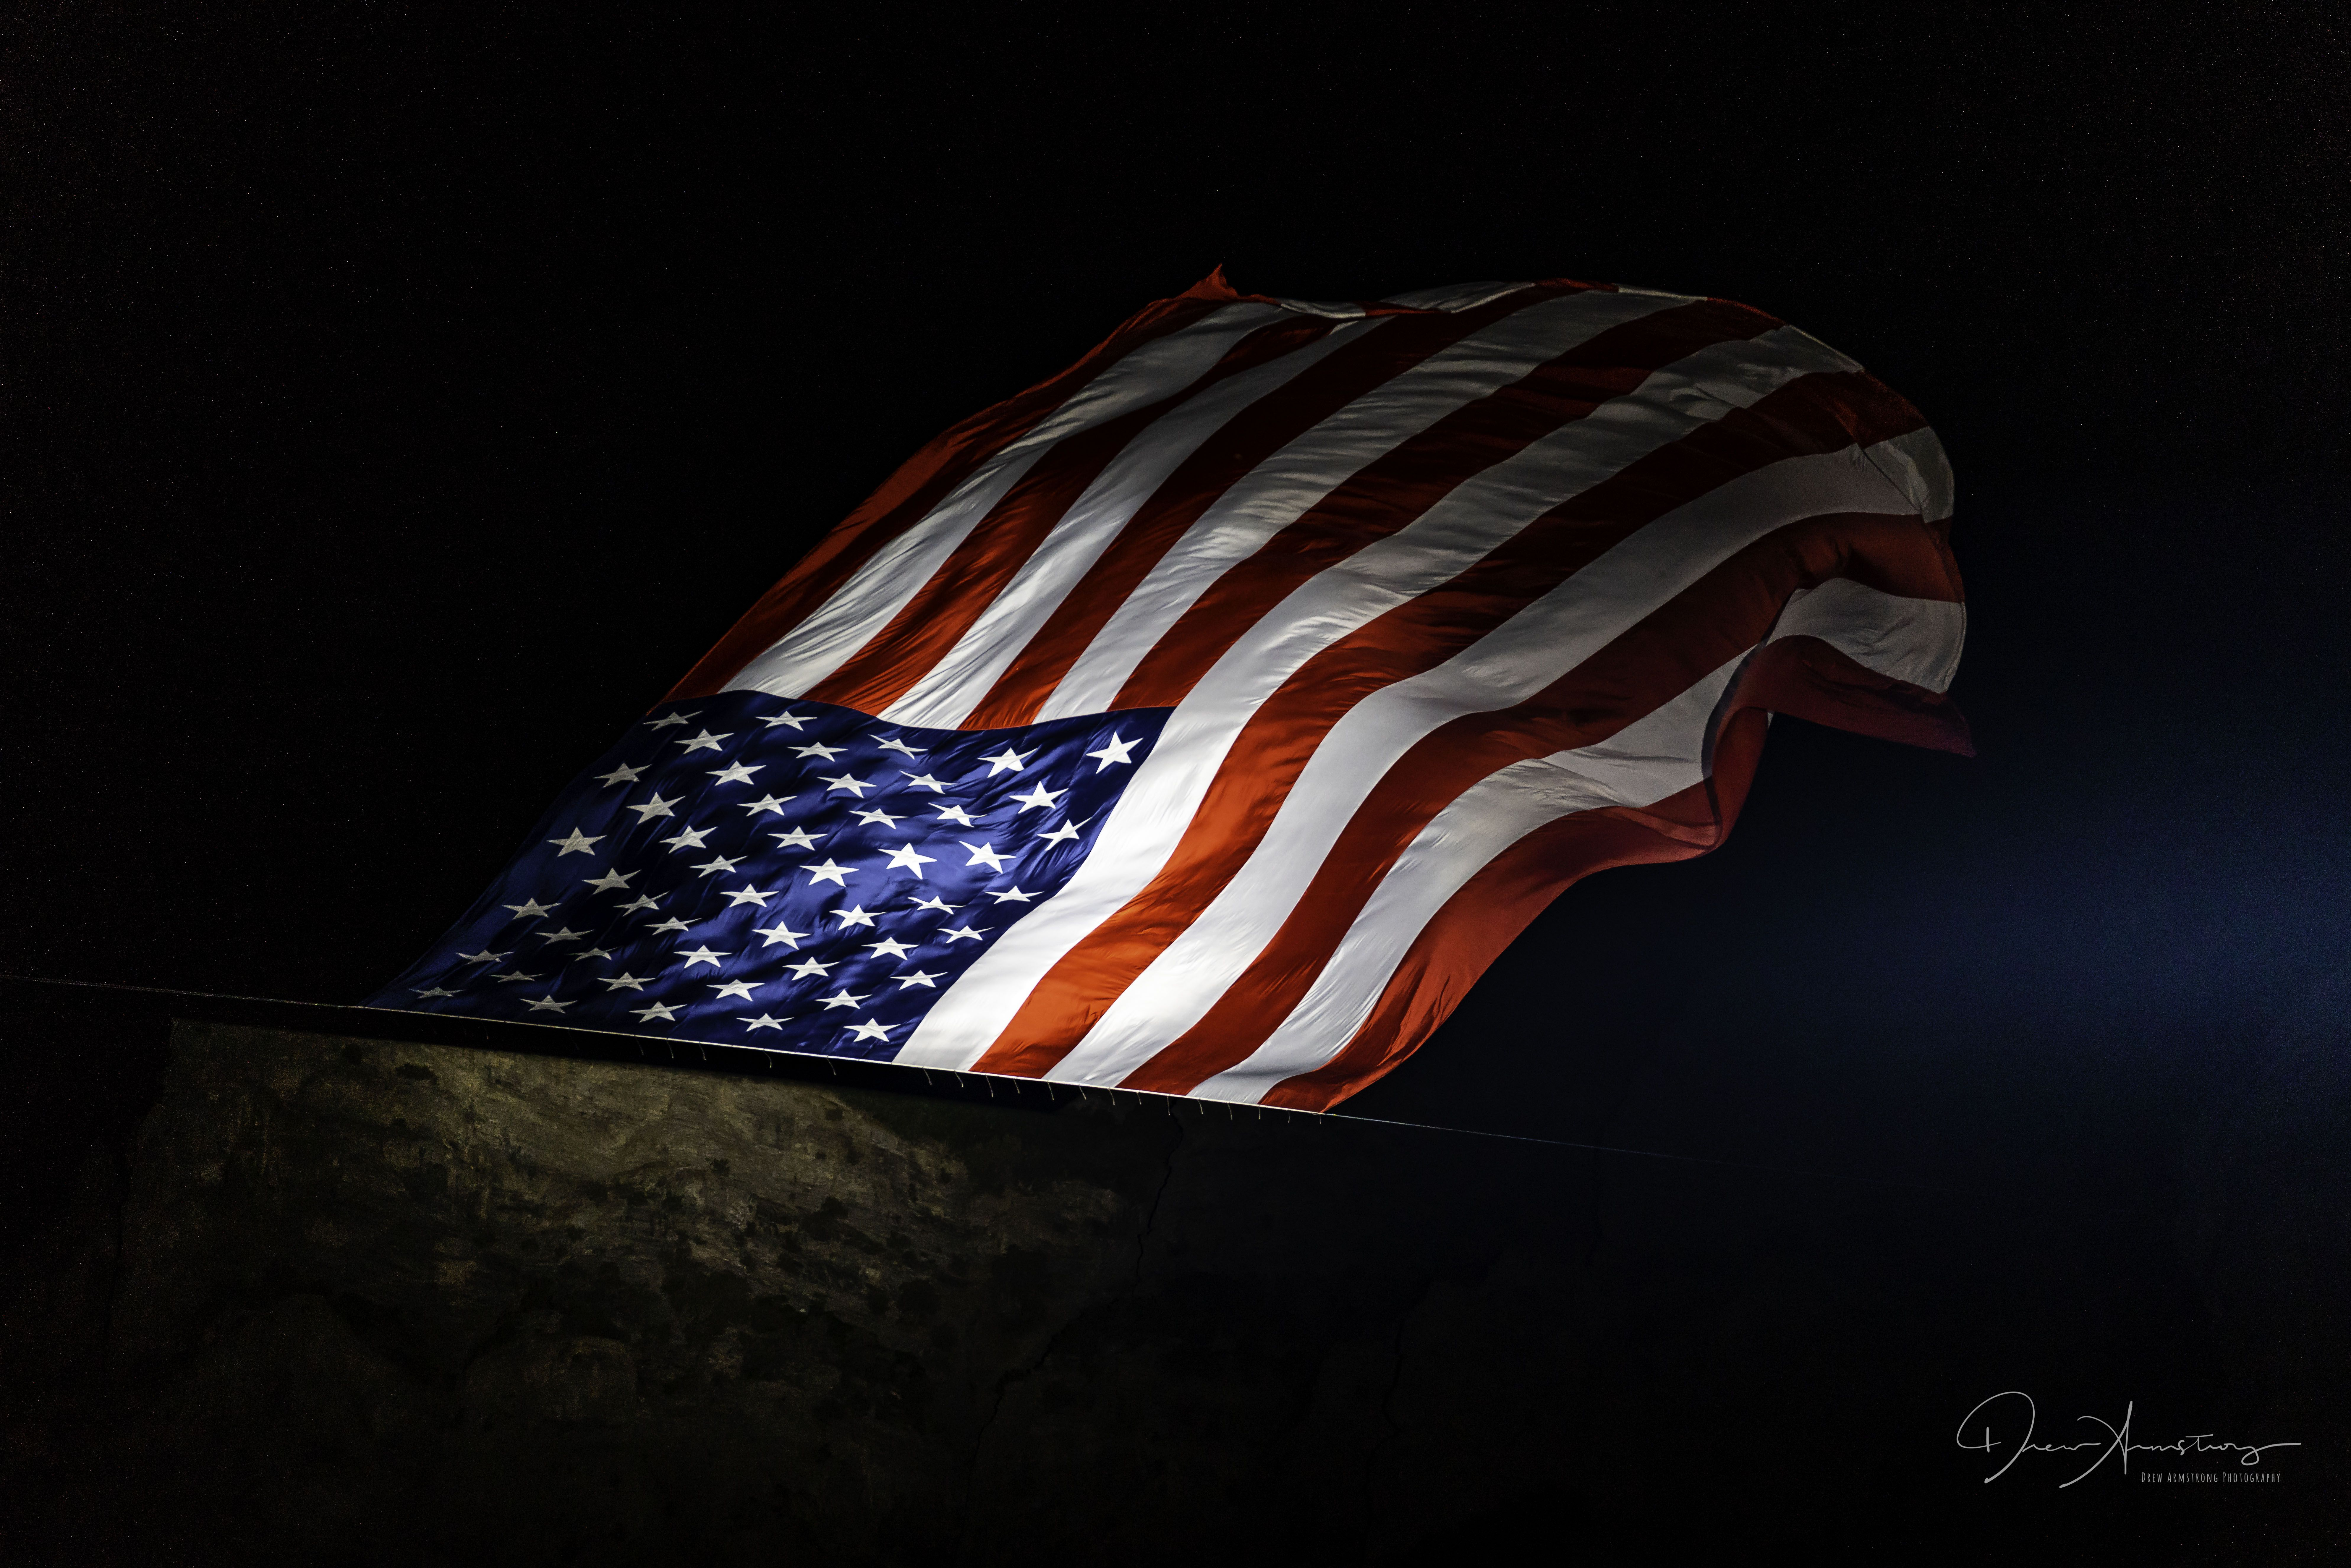 This Flag Is Flown Every July 4th In Pleasant Grove Utah It Is The Largest Us Flag Ever Flown It Weighs 450 Pounds And Is 1 4th Flag Us Flag Pleasant Grove